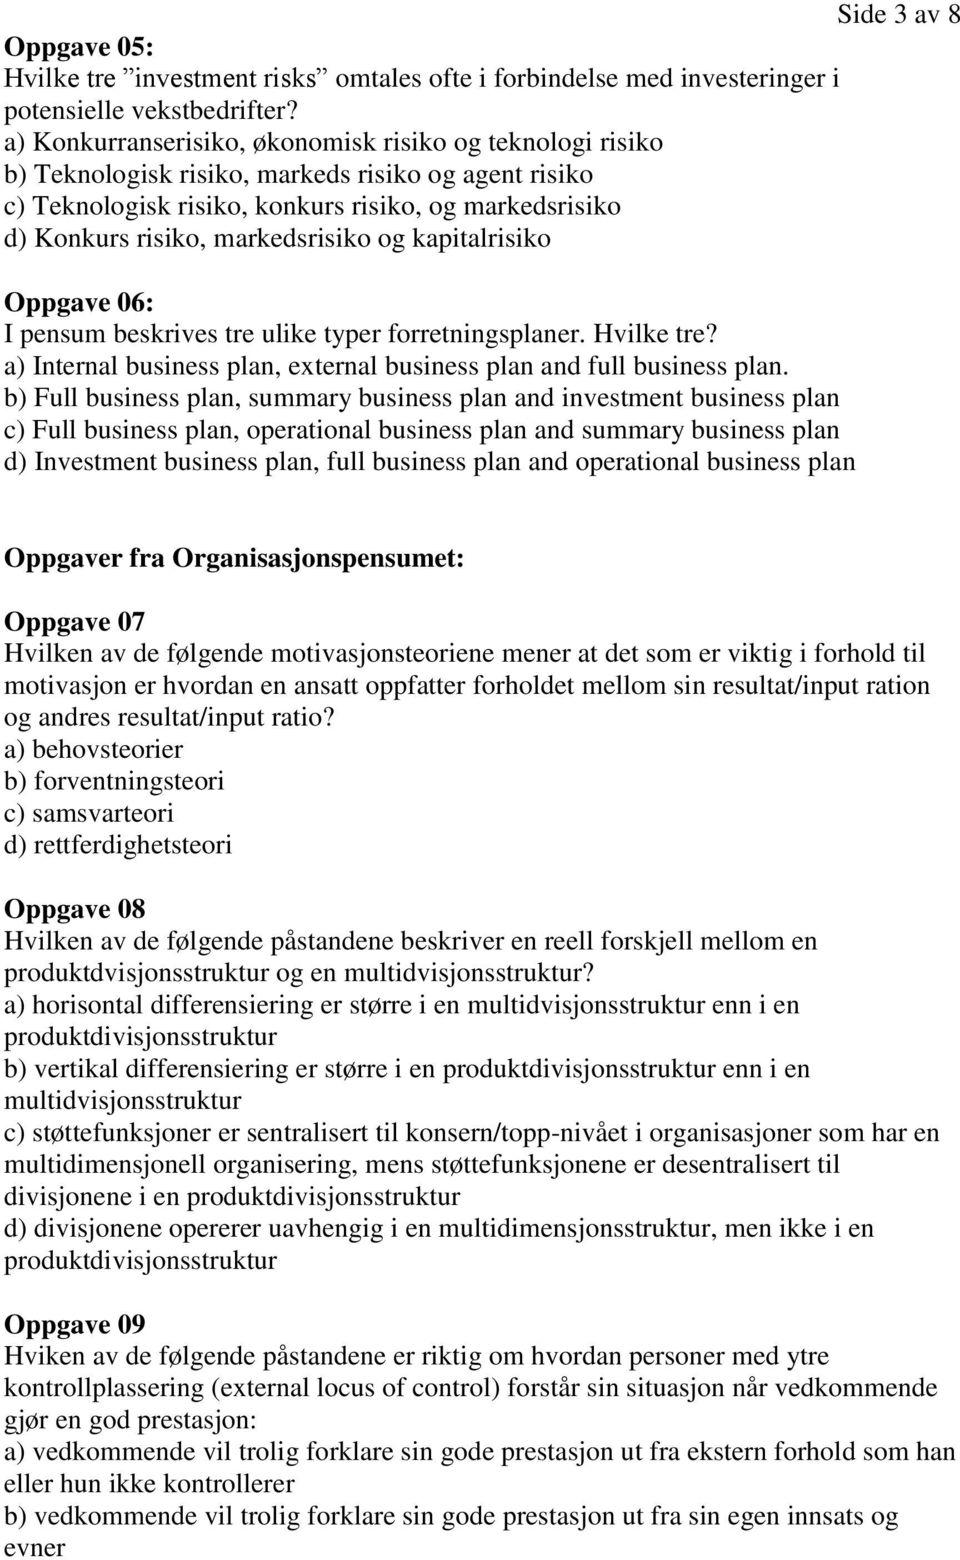 markedsrisiko og kapitalrisiko Oppgave 06: I pensum beskrives tre ulike typer forretningsplaner. Hvilke tre? a) Internal business plan, external business plan and full business plan.